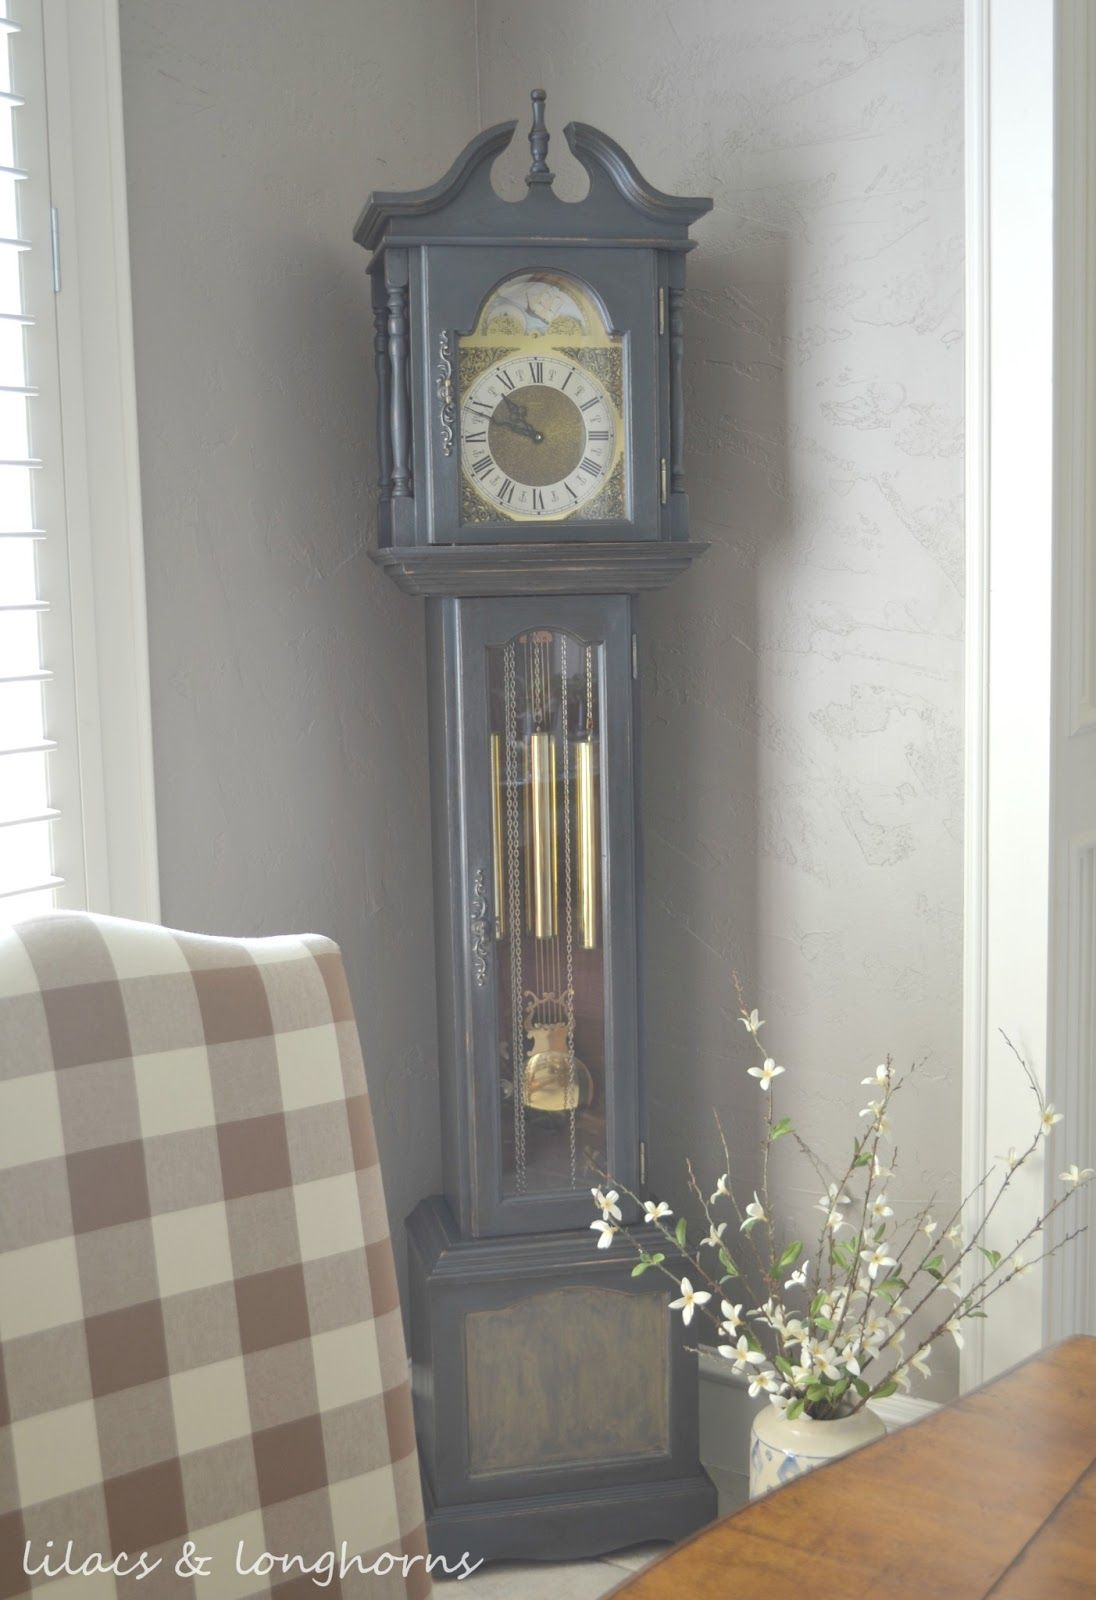 A grandfather clock makeover and a little history lilacs and a grandfather clock makeover and a little history lilacs and longhornslilacs and longhorns amipublicfo Image collections